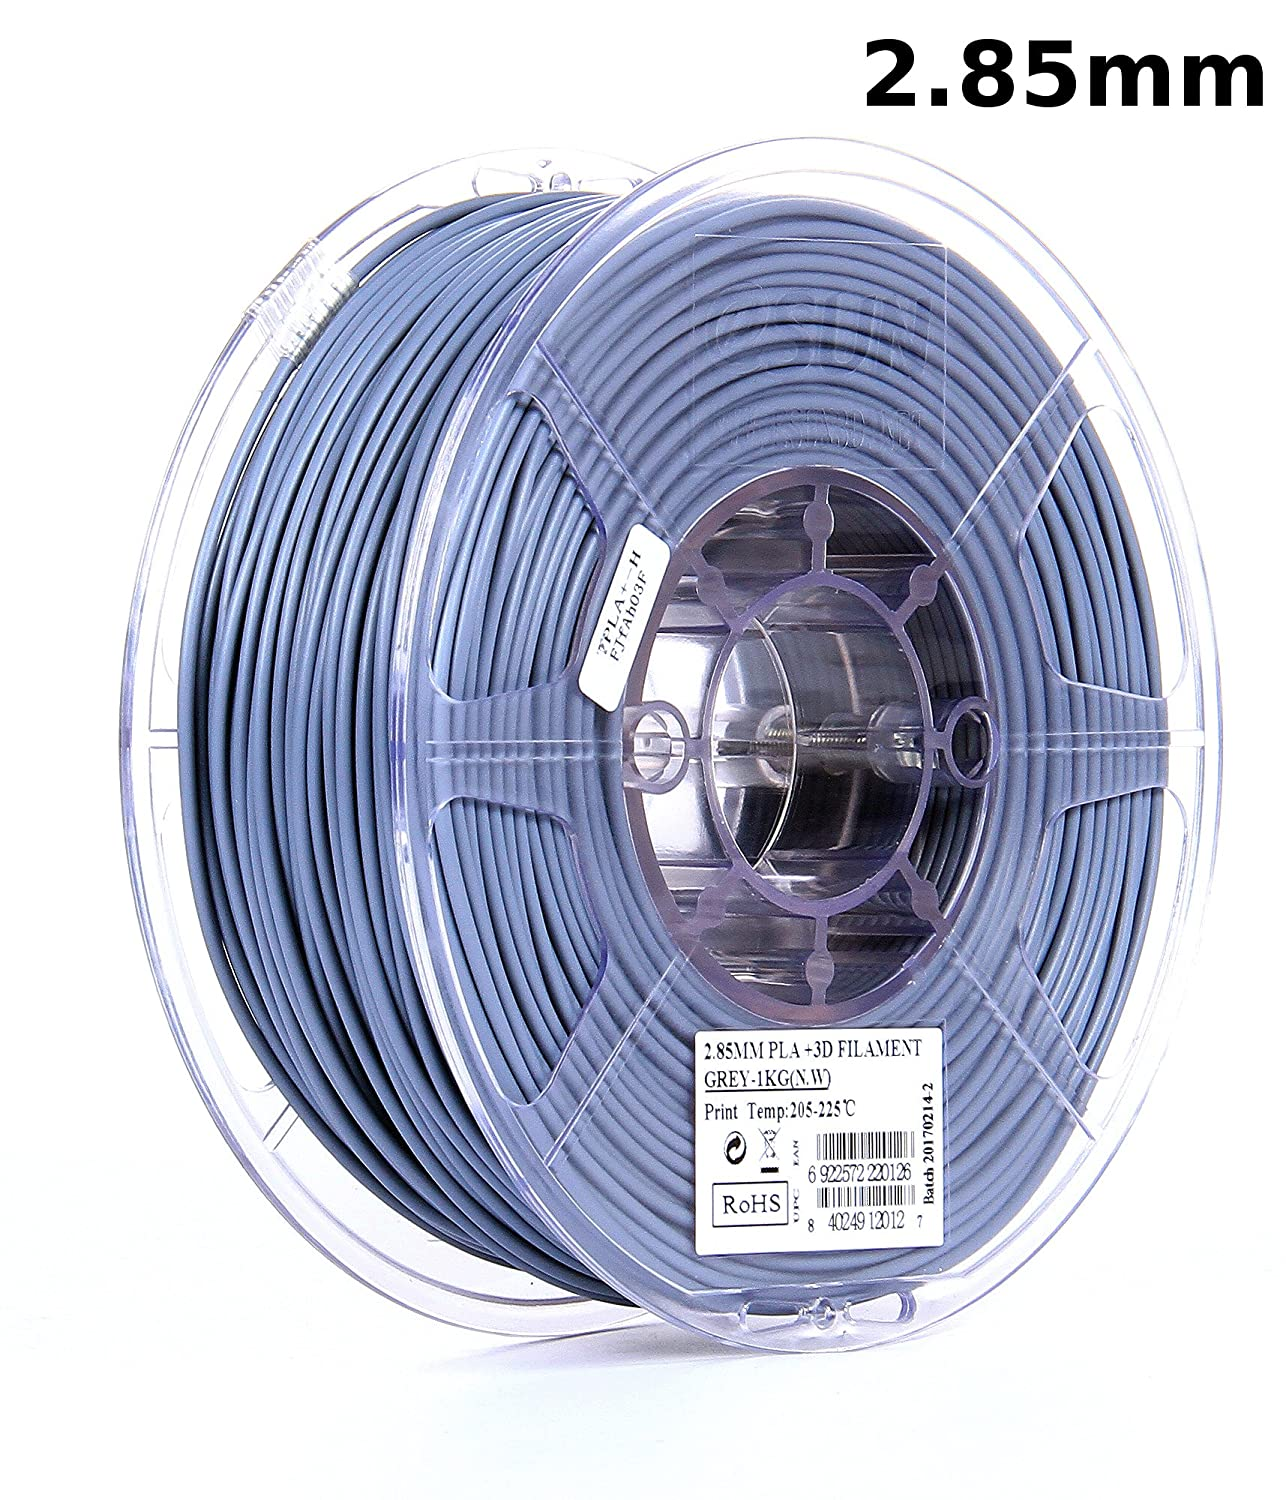 eSUN 3mm Gray PLA PRO (PLA+) 3D Printer Filament 1KG Spool (2.2lbs), Actual Diameter 2.85mm +/- 0.05mm, Gray, (Pantone 2107C)